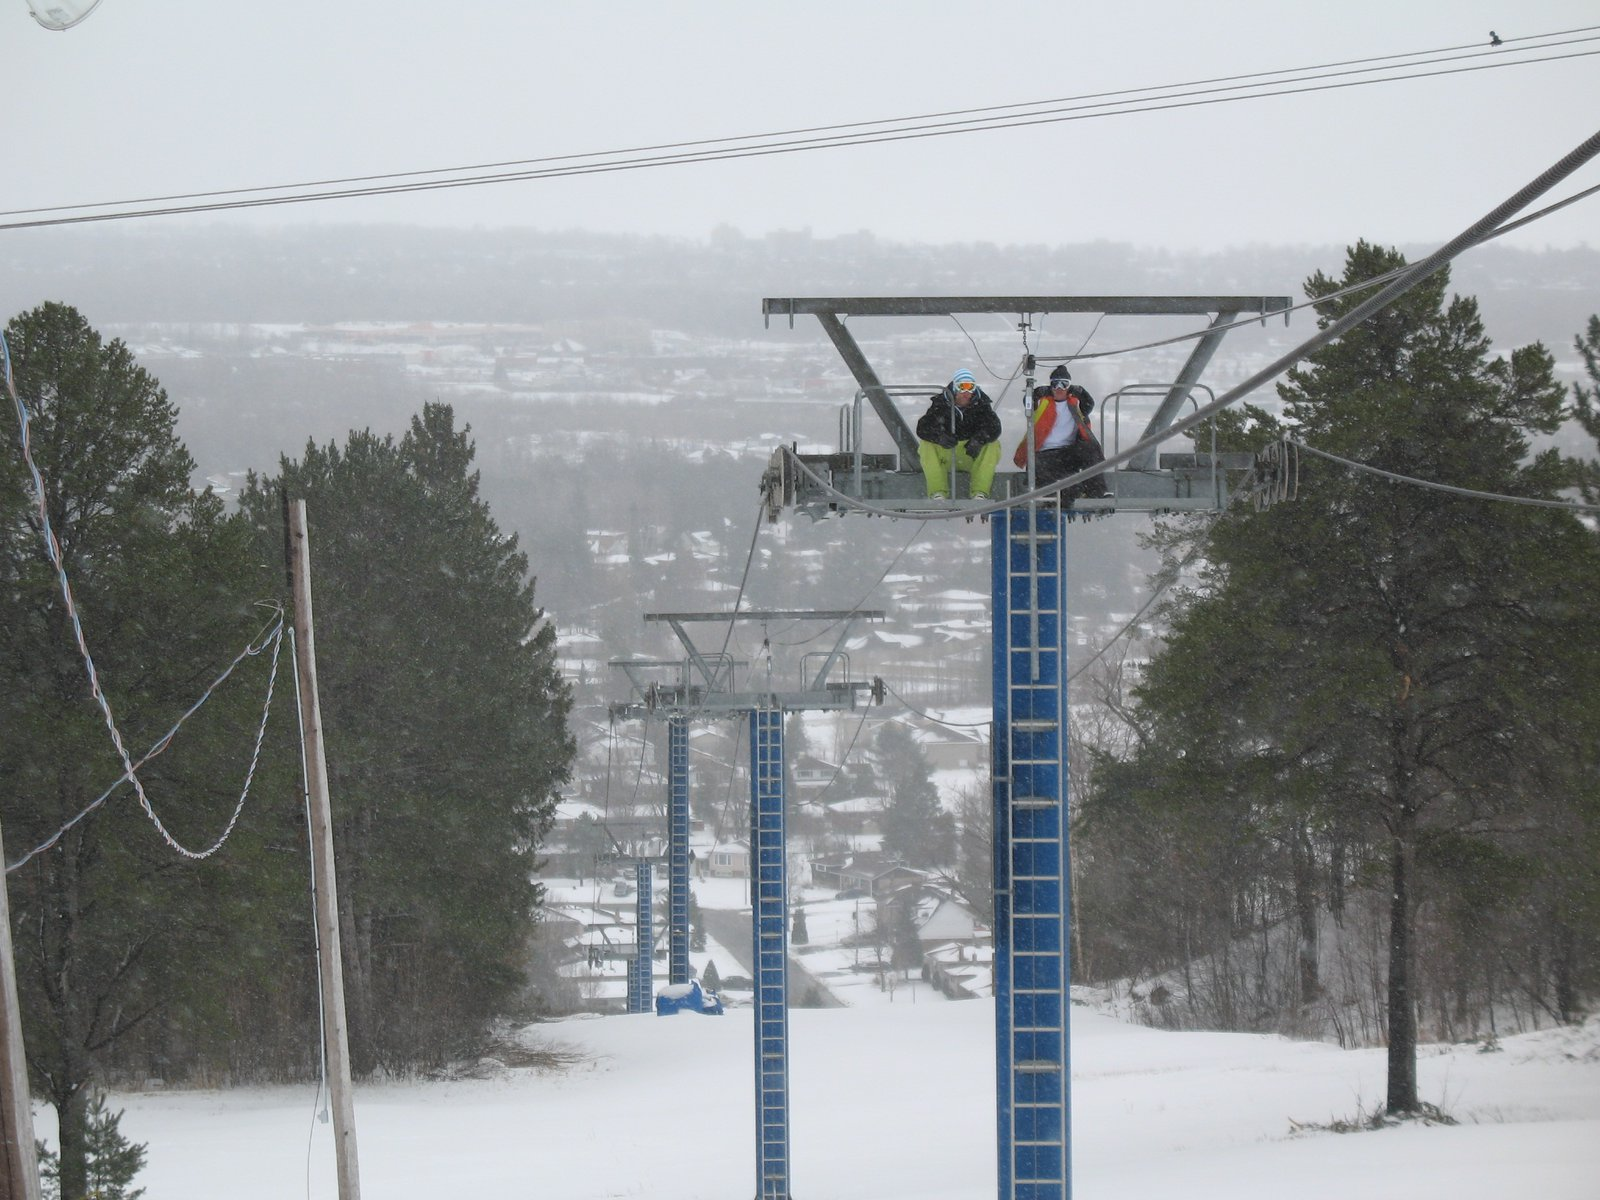 On the lift tower